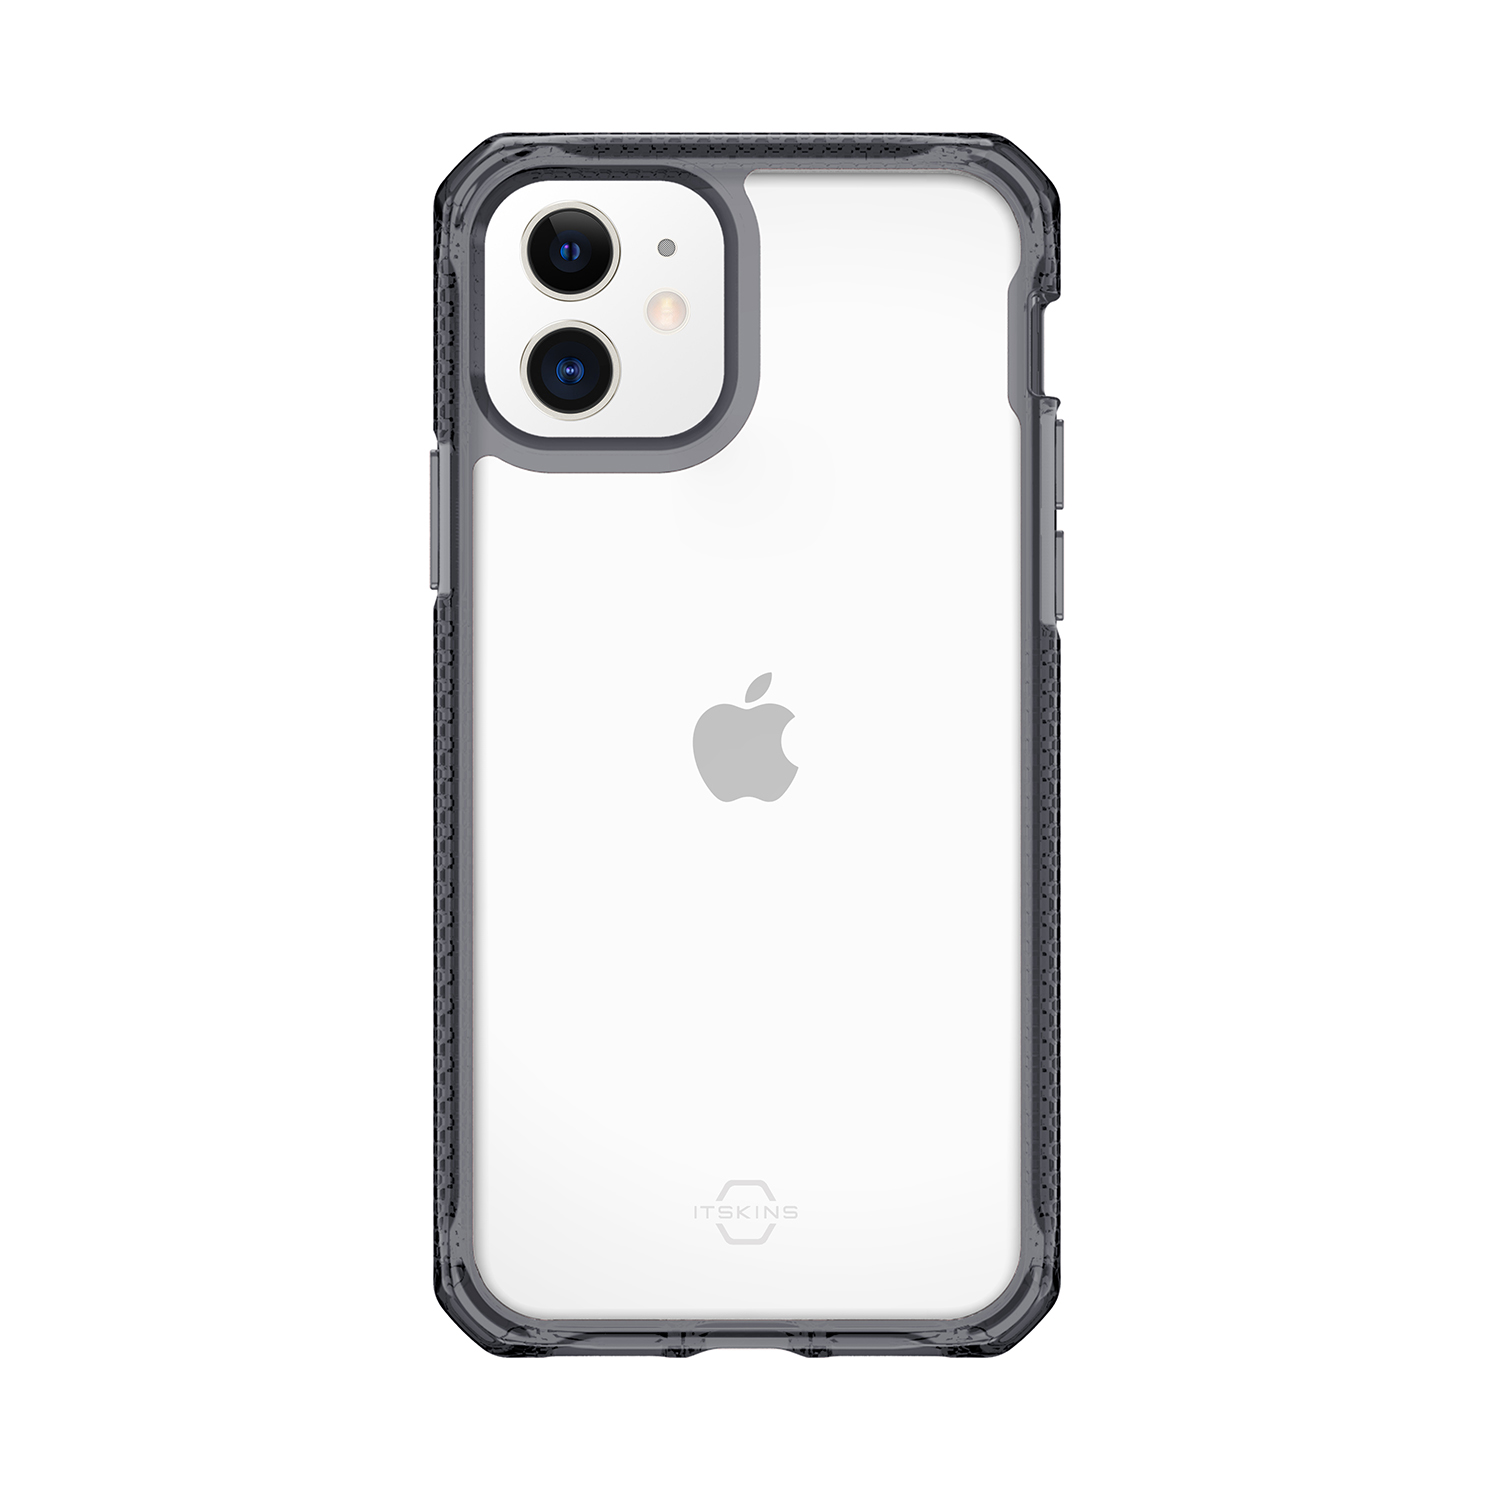 ITSKINS Hybrid Clear Case for iPhone 11, 11 Pro & 11 Pro Max